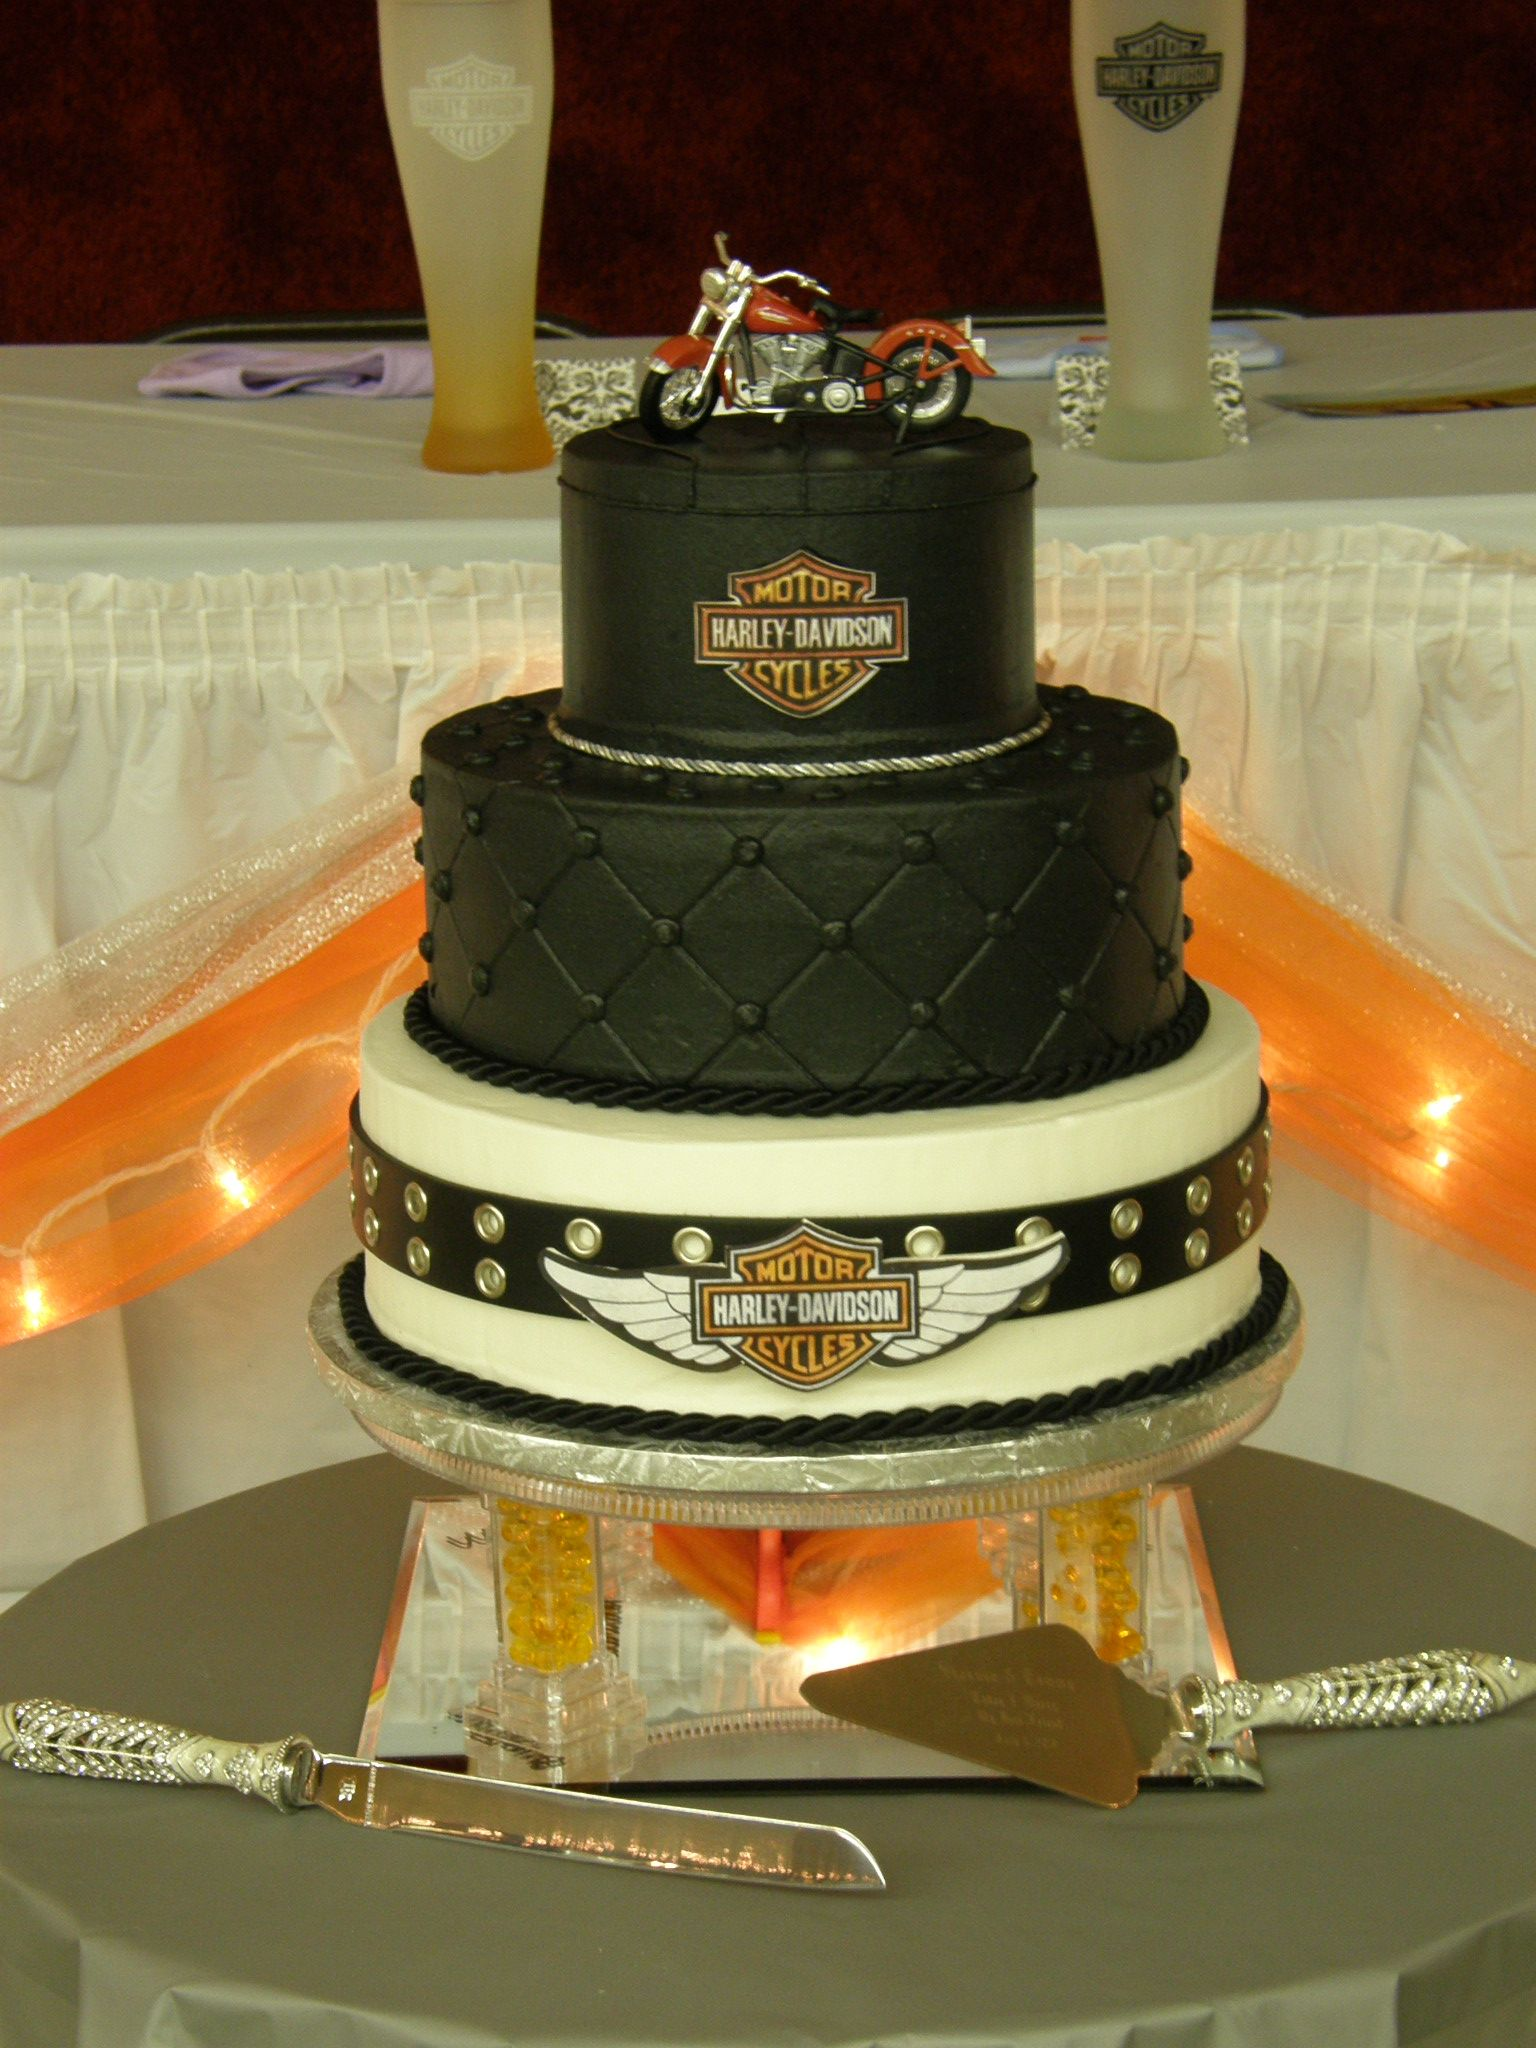 harley davidson wedding bands tiers stacked All buttercream Harley logos are printed from computer and glued to gumpaste cutouts with piping gel Top tier has piping to look like